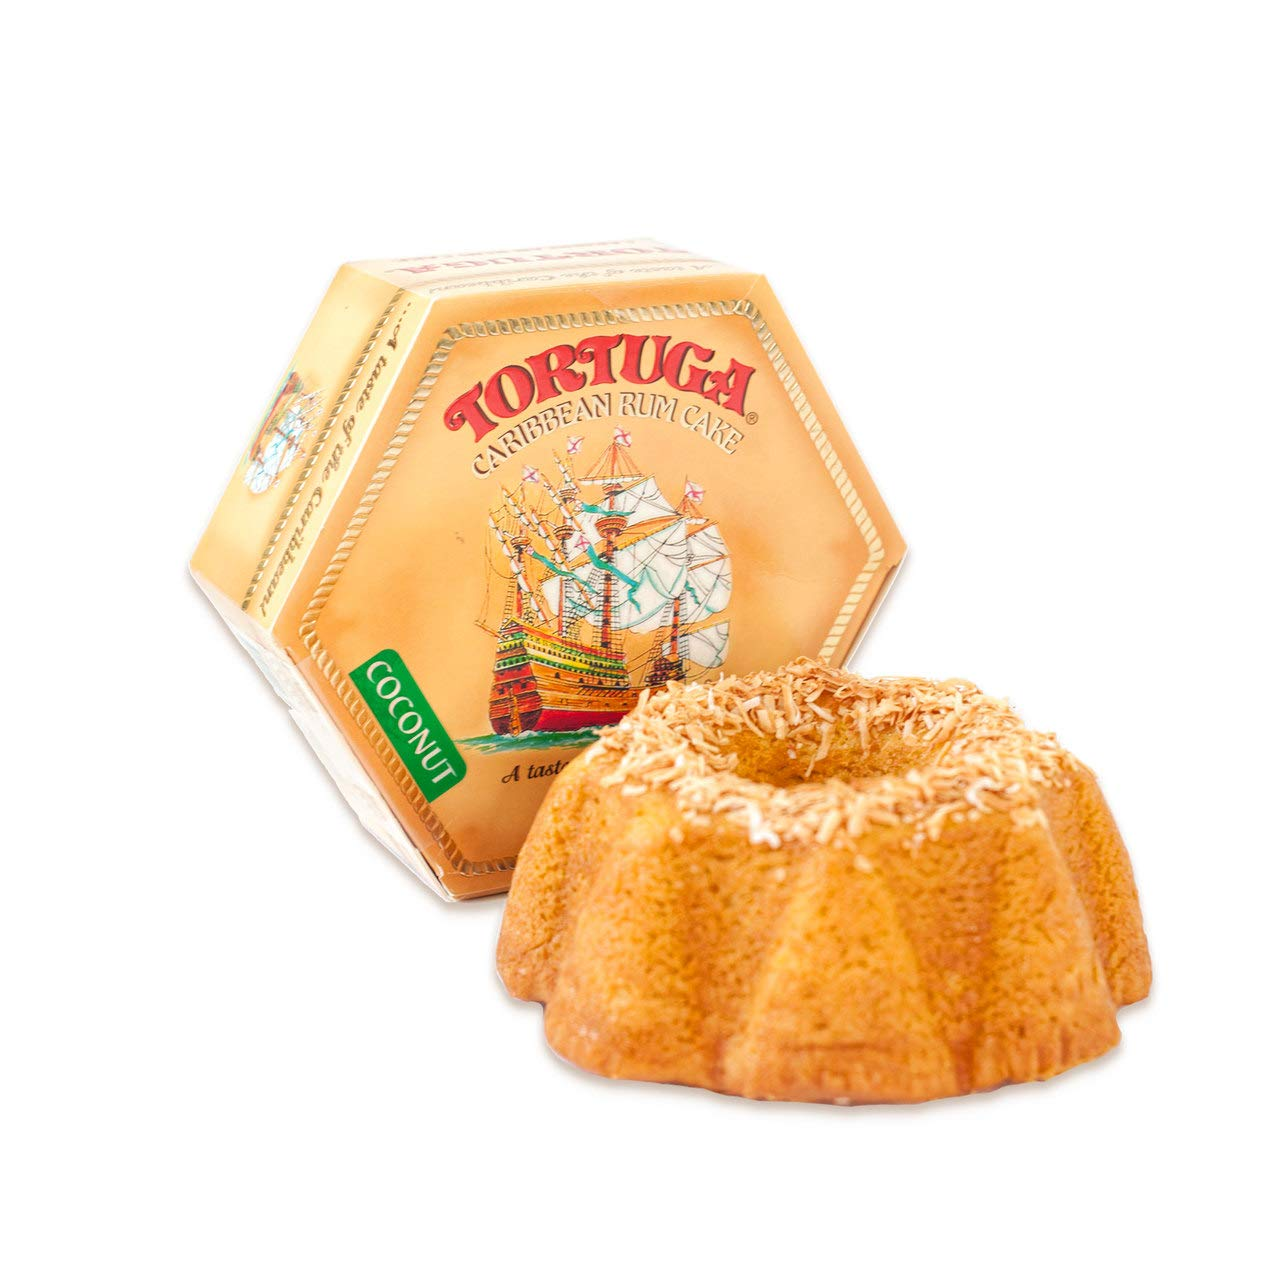 TORTUGA Caribbean Coconut Rum Cake - 4 oz Rum Cake - The Perfect Premium Gourmet Gift for Gift Baskets, Parties, Holidays, and Birthdays